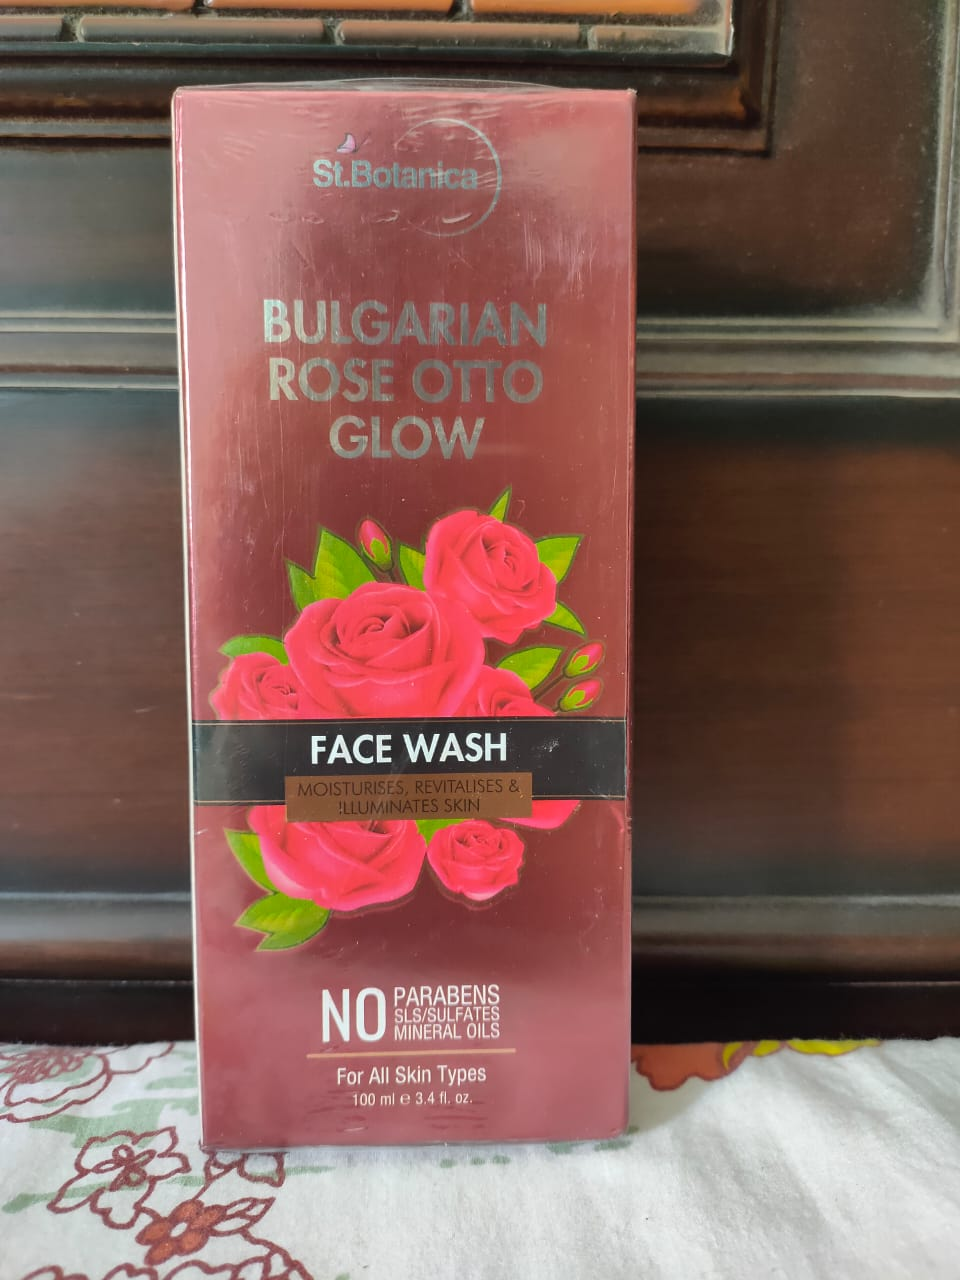 StBotanica Bulgarian Rose Otto Glow Face Wash-Rejuvenating Face Wash-By rsravani-2